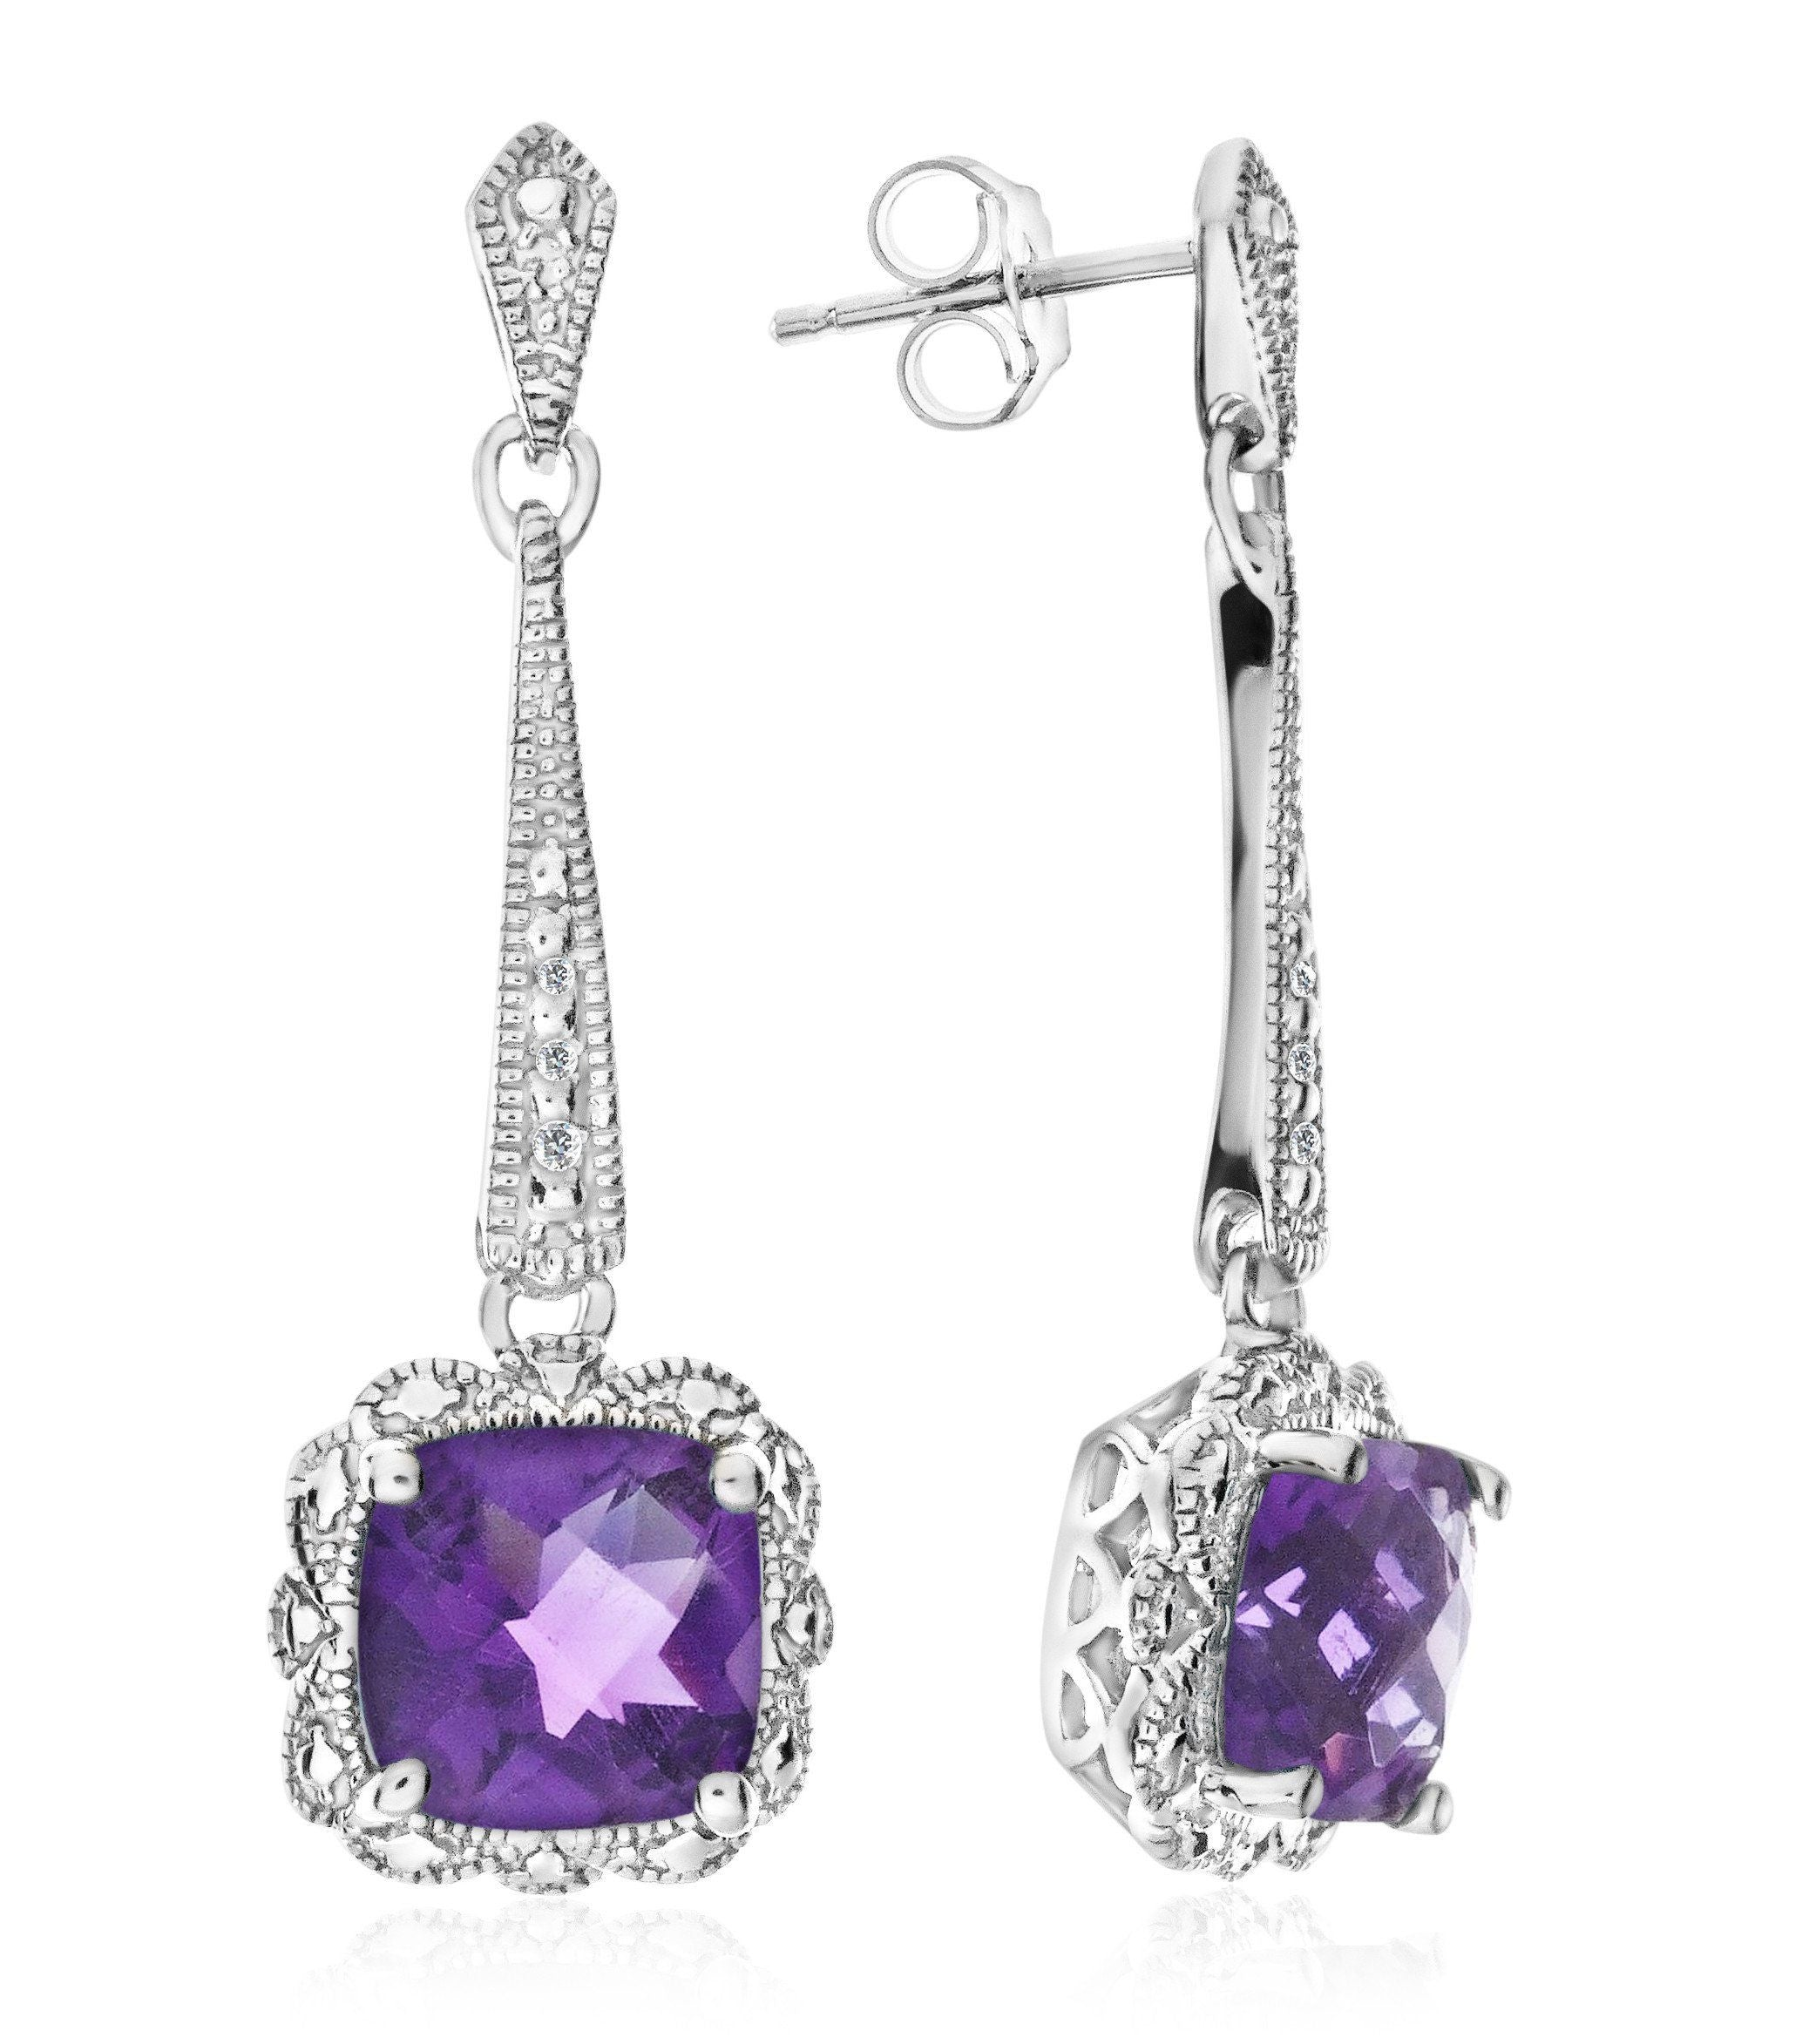 1.70 Carat Amethyst Dangle Earrings with Diamond Accents in Sterling Silver